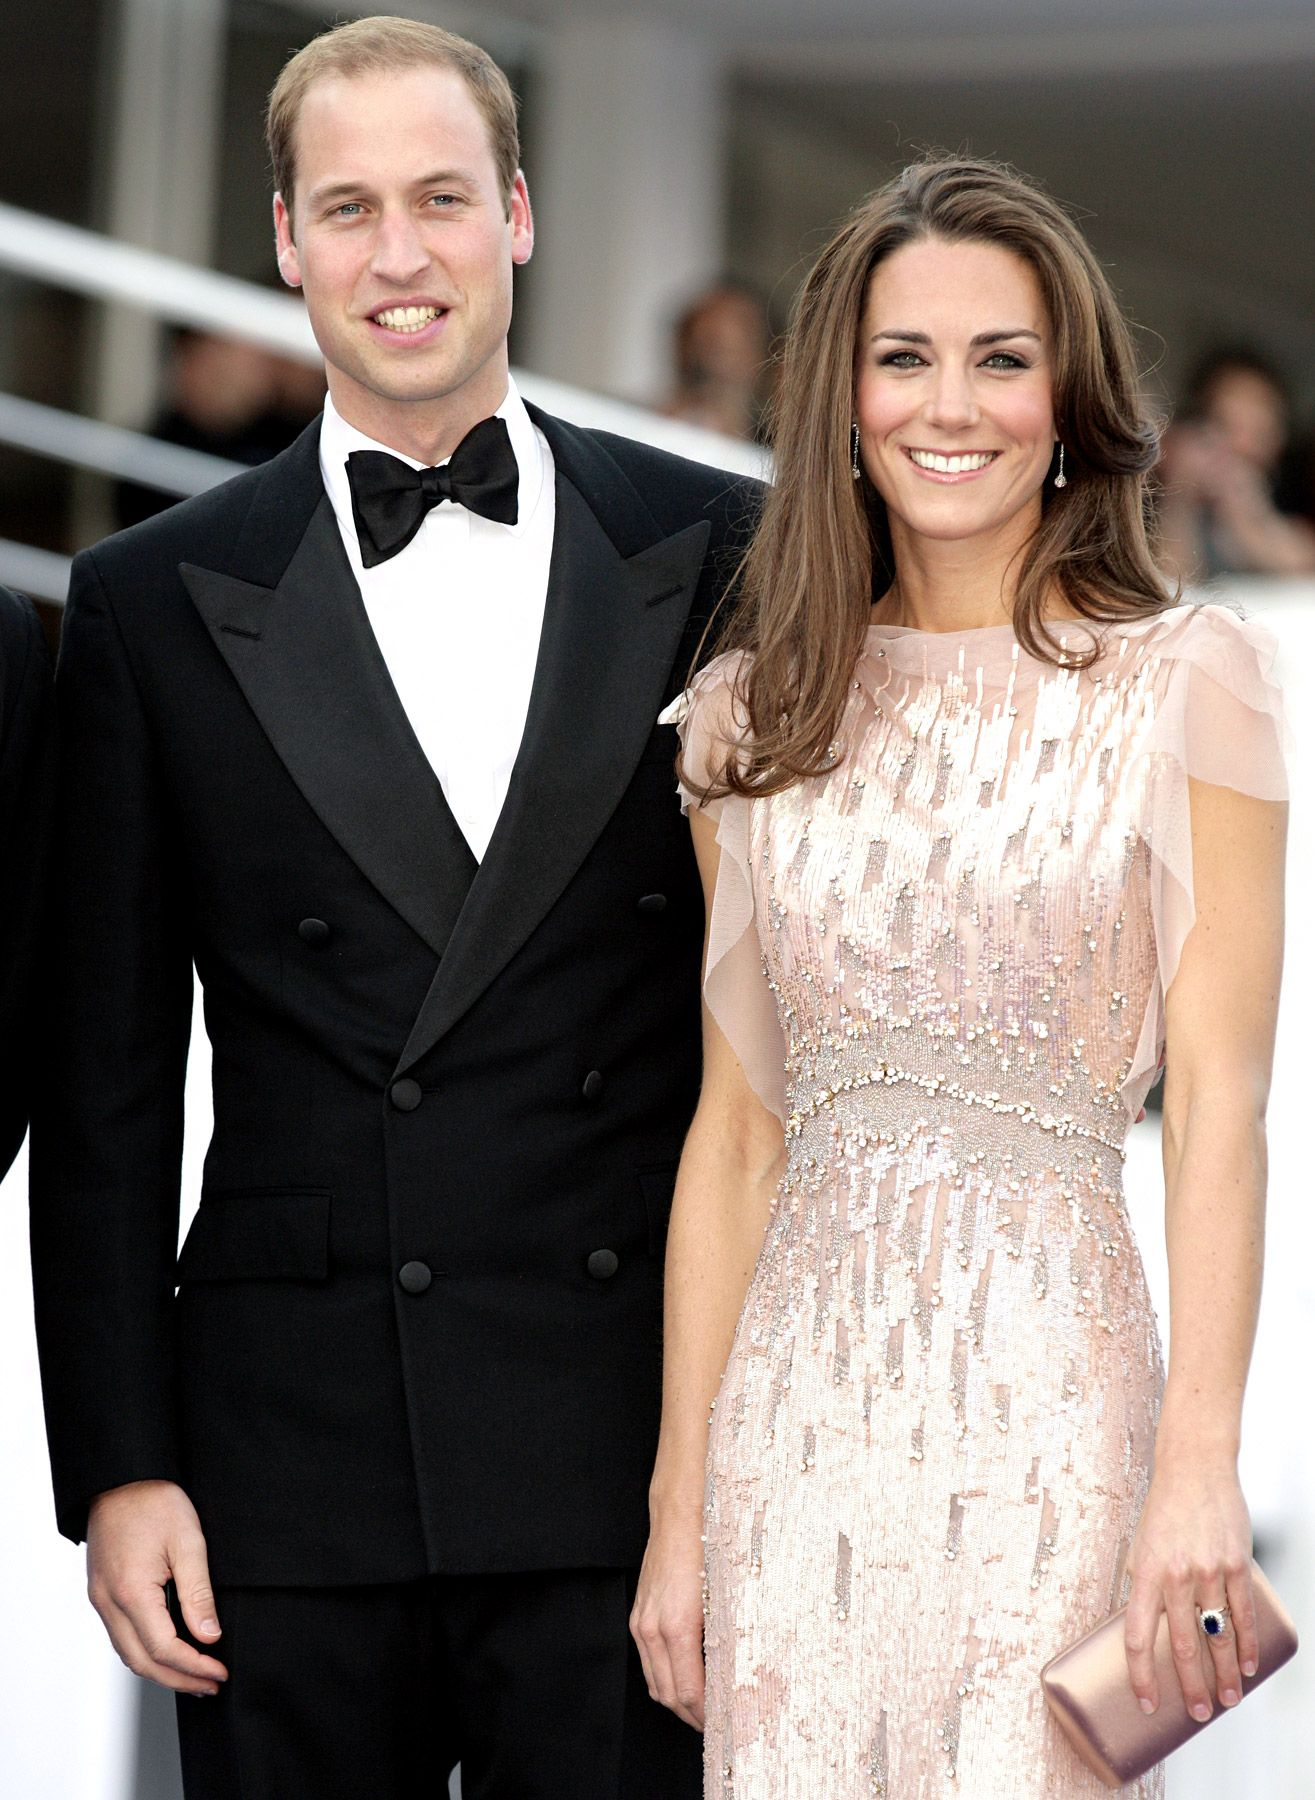 38b7f7b7bc3 Kate Middleton and Prince William s First Year of Marriage  June 2011